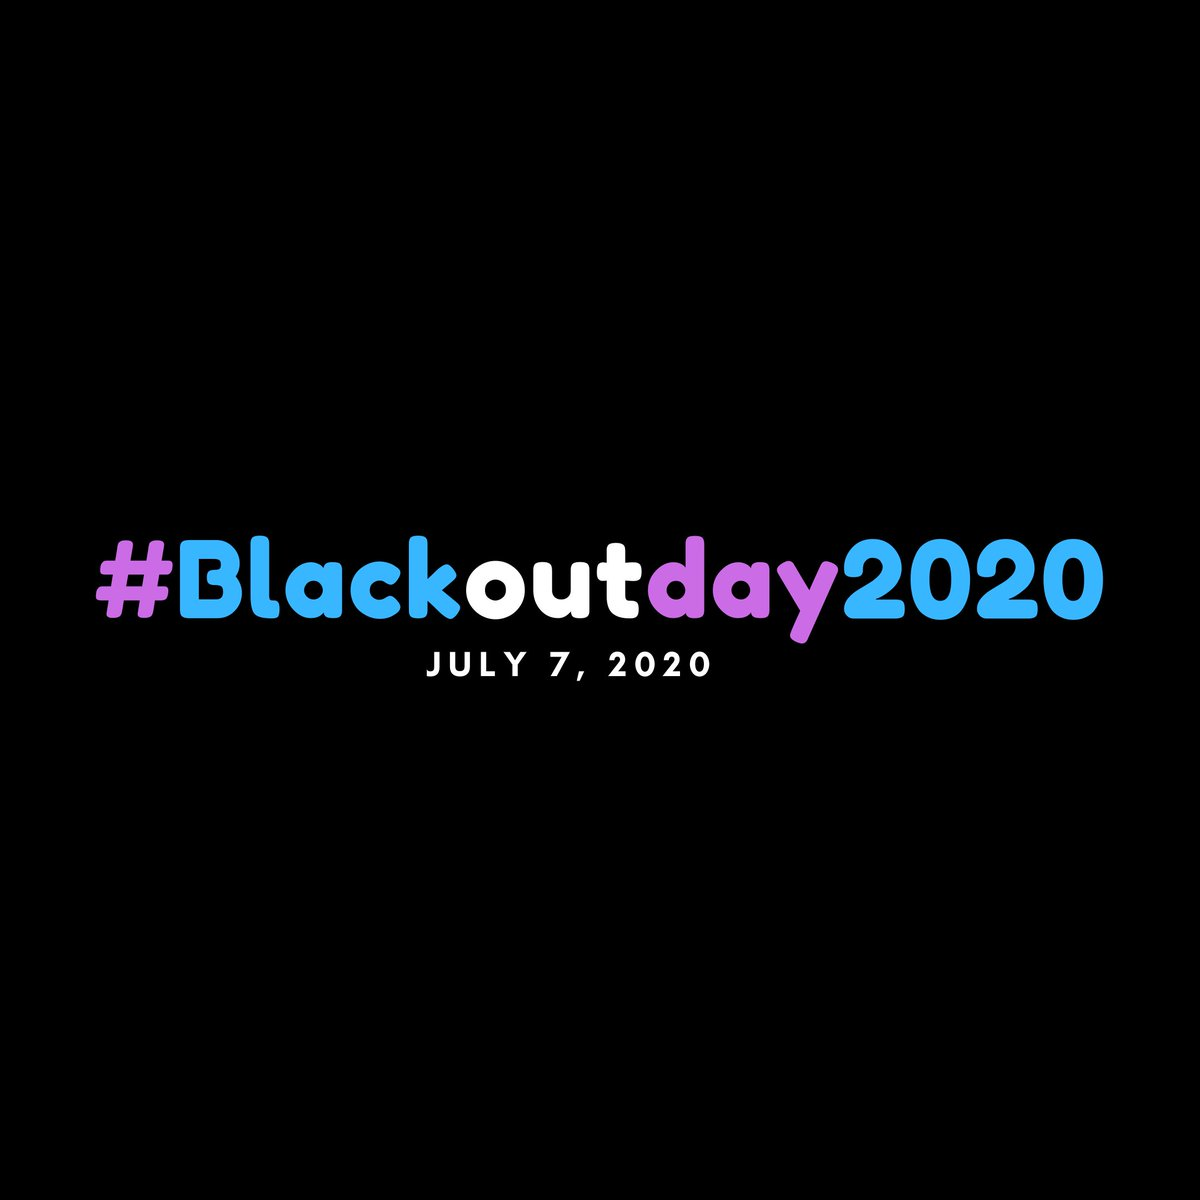 #BlackOutDay- One mechanism to help dismantle institutional racism is to empower. Today, July 7, 2020 is #BlackoutTuesday. Please find Black-owned businesses or organizations in your area you can support and support them beyond this day. #Blackoutday2020 https://t.co/aVN1JOhVeZ